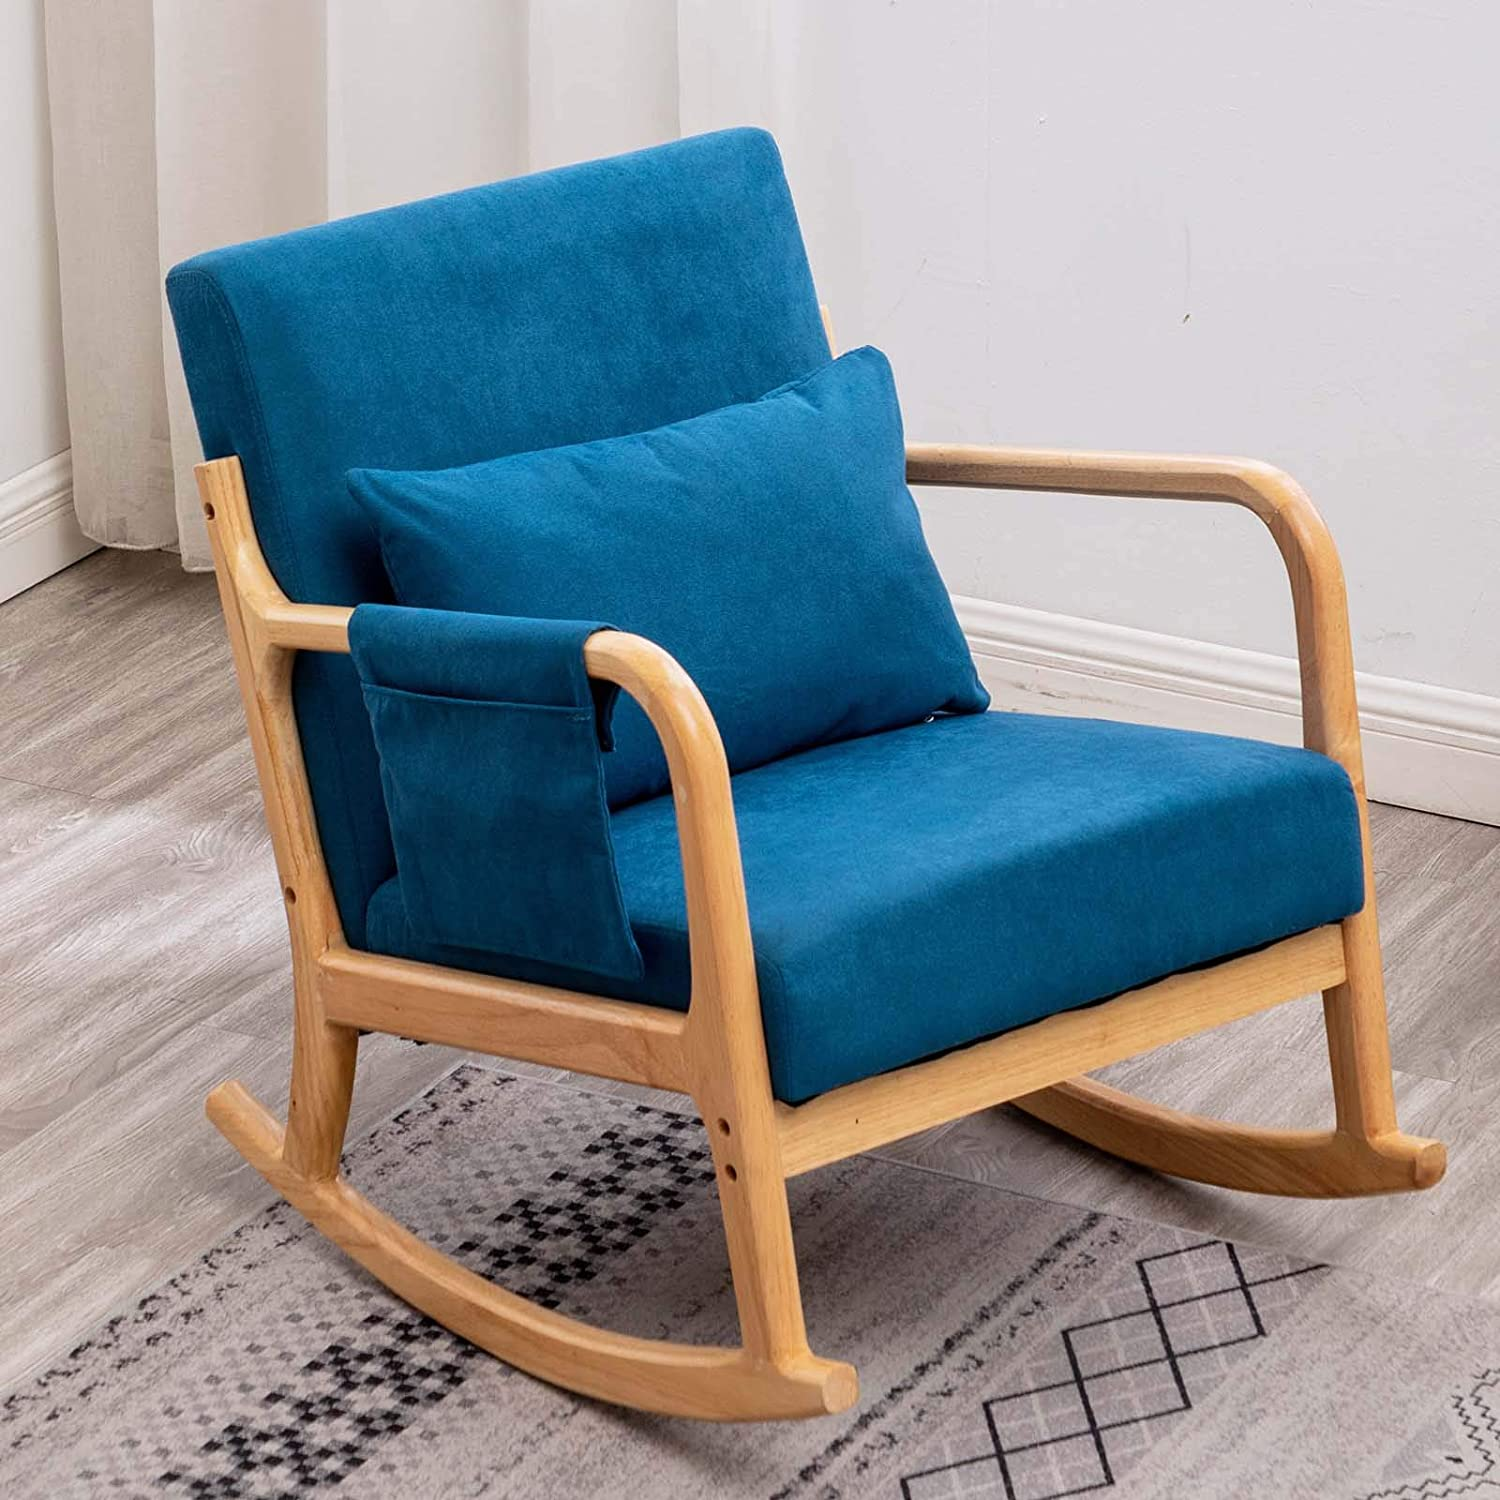 Amazon Com Rocking Chair For Nursery Nursery Chair Modern Rocking Chair Nursery Rocking Chairs With Pillow And Side Storage Pocket Blue Kitchen Dining